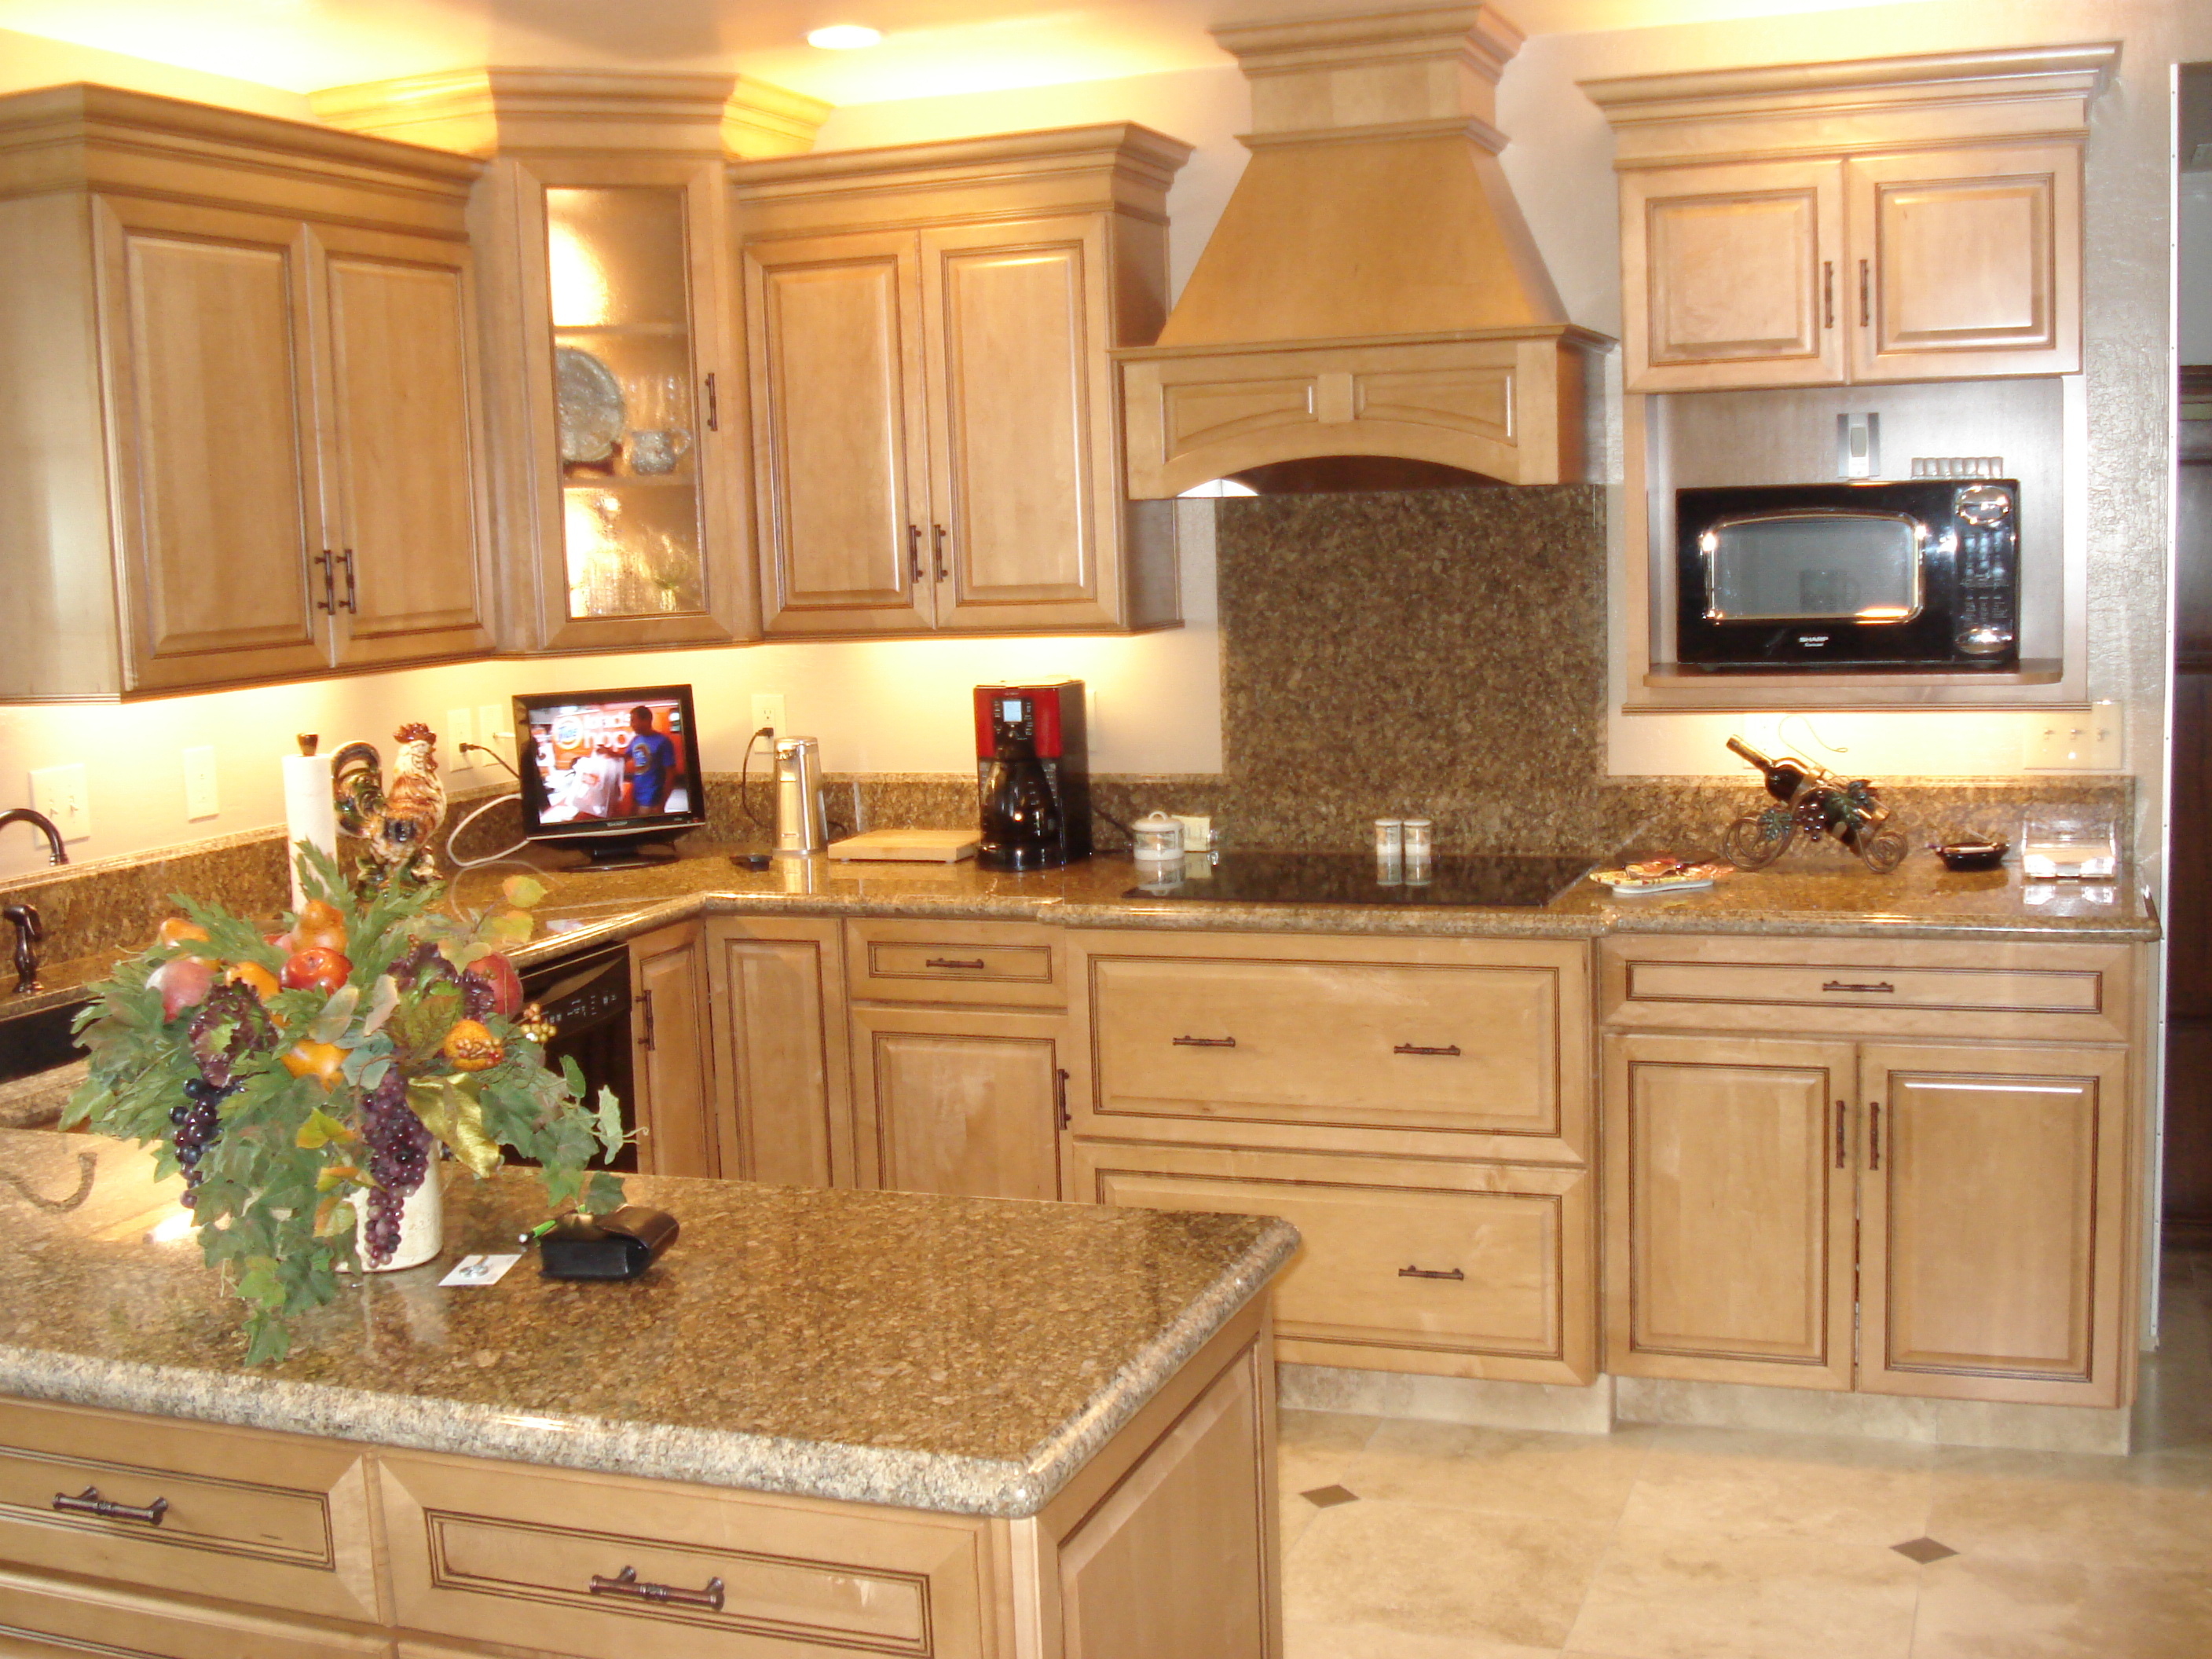 kitchen remodels absolute electric kitchen remodeling kitchen design kansas cityremodeling kansas city